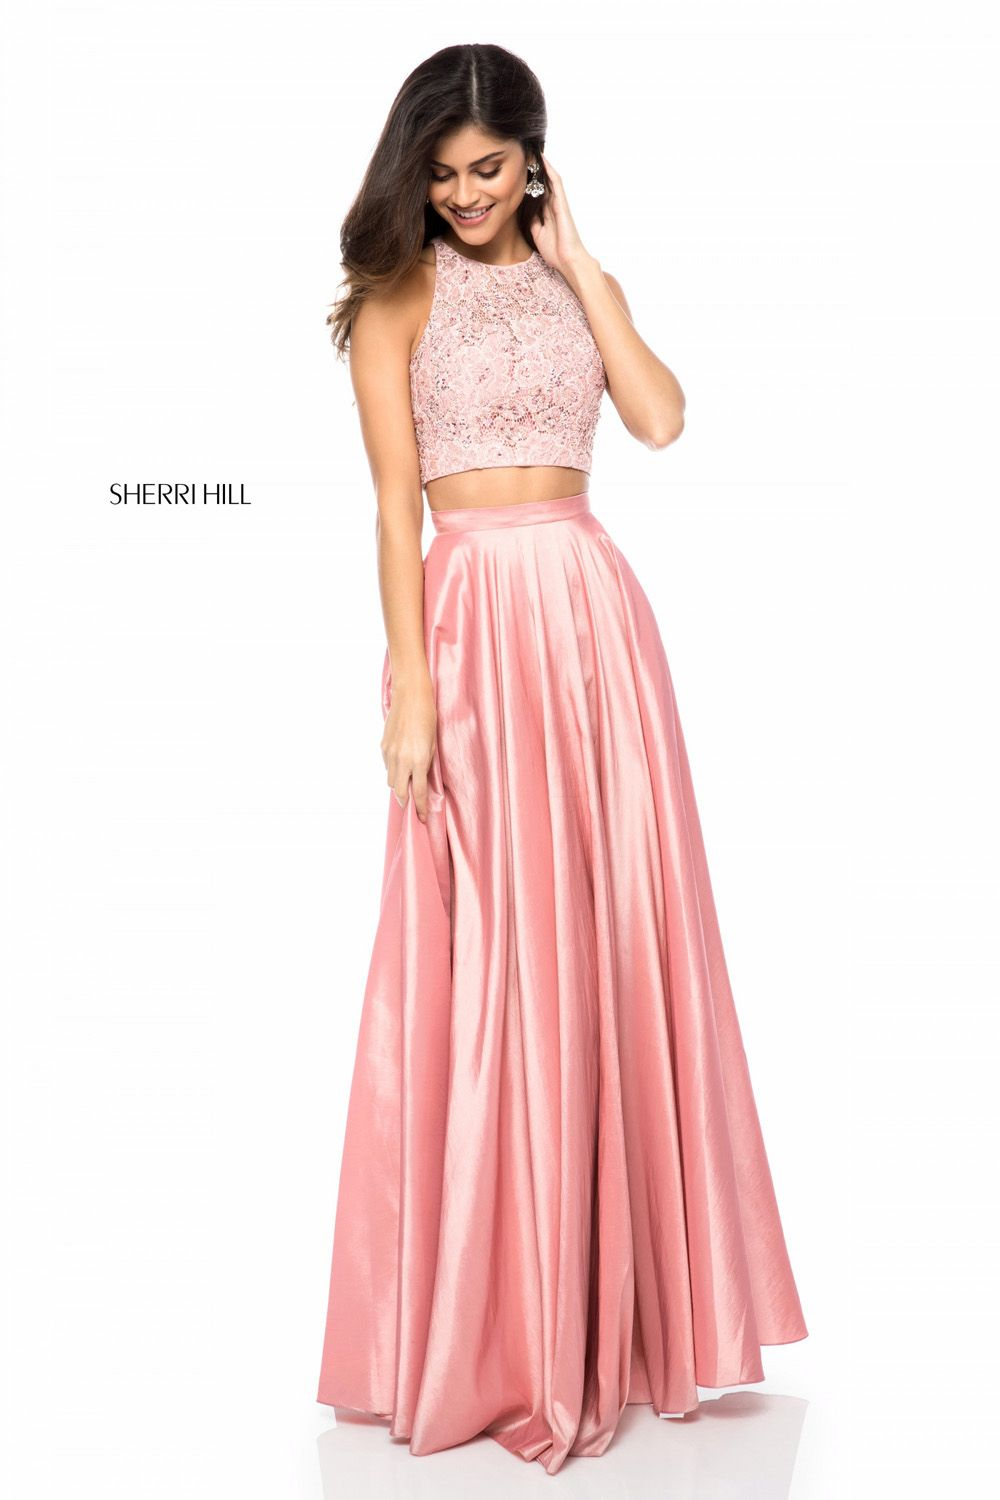 Sherri Hill 51723 - International Prom Association